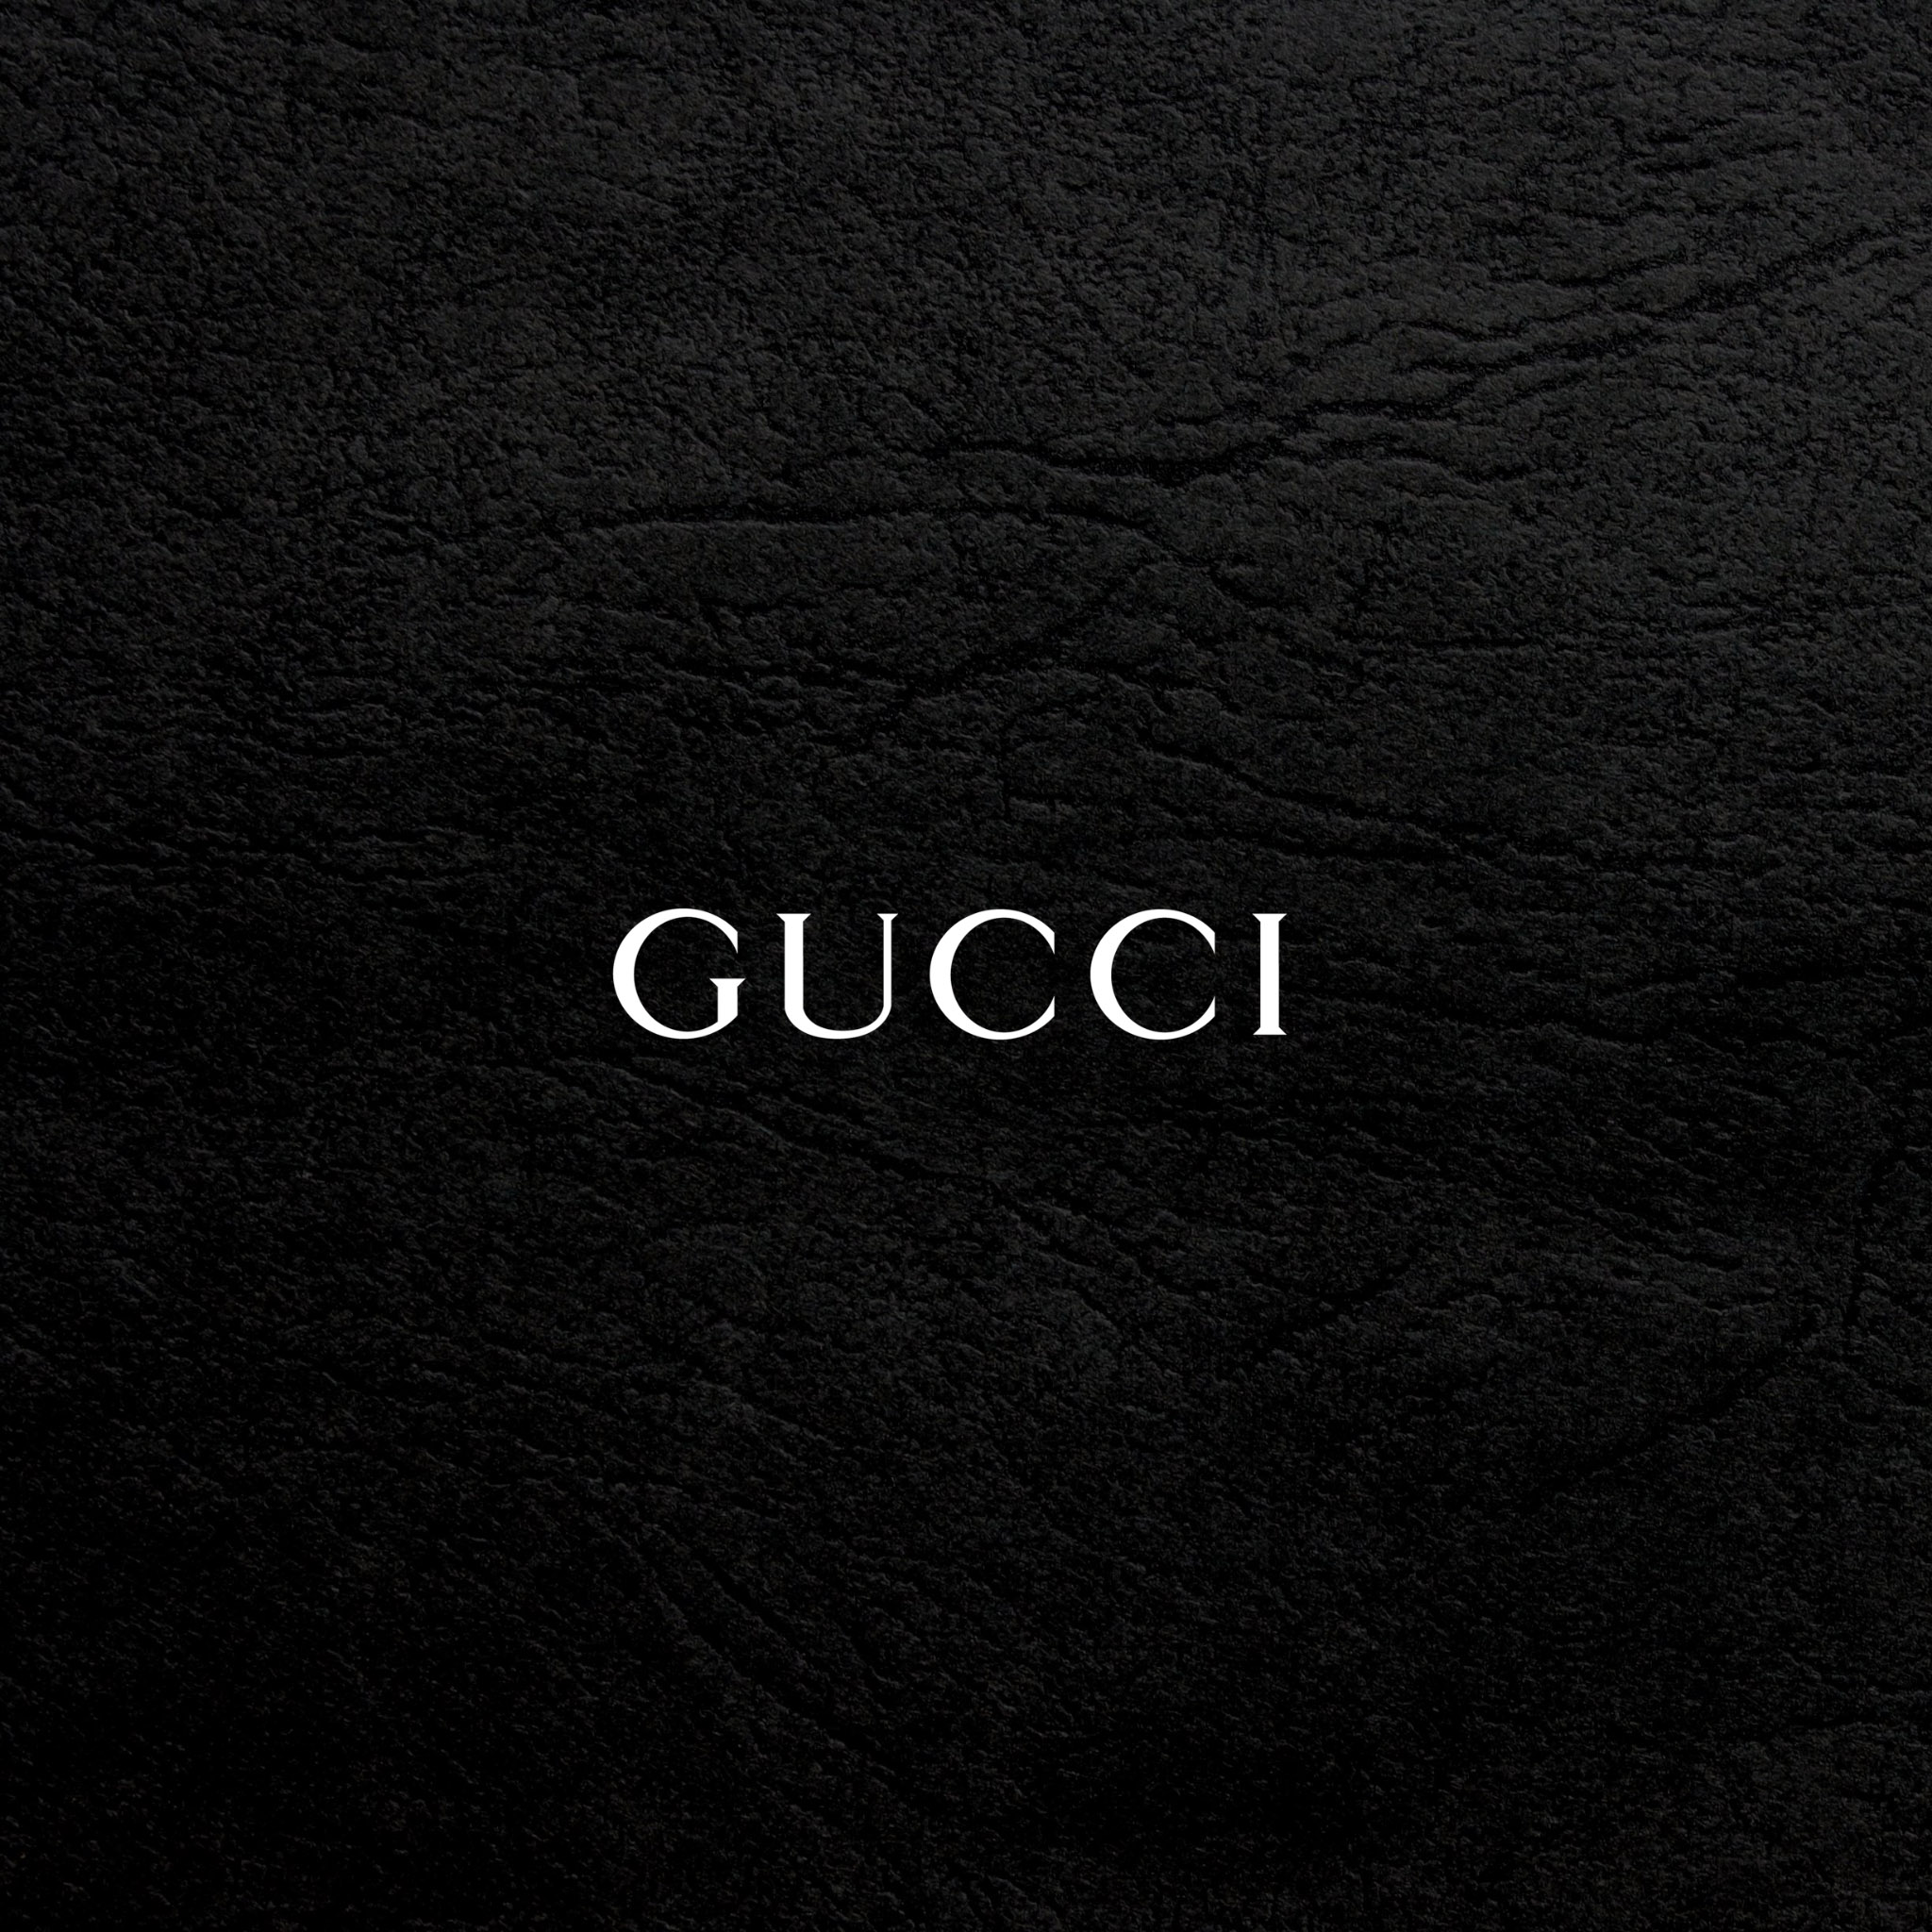 Gucci Wallpaper on HipWallpaper